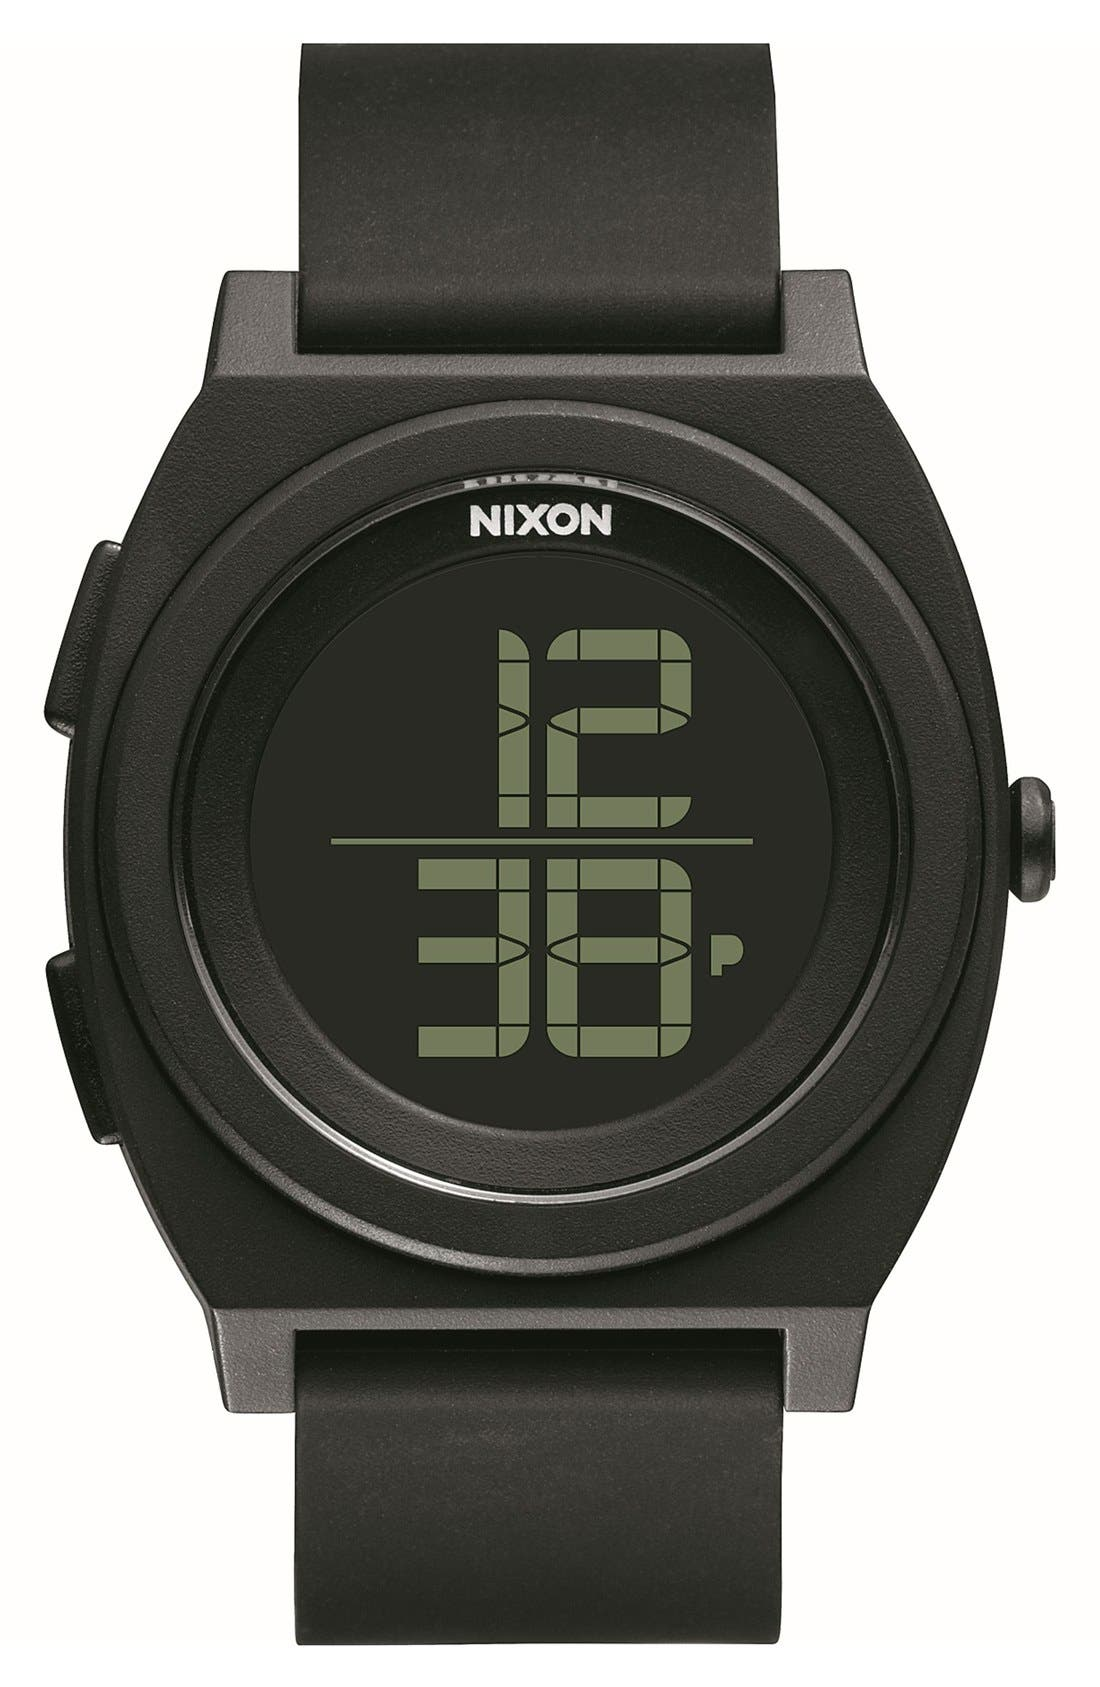 Main Image - Nixon 'Time Teller' Digital Watch, 40mm